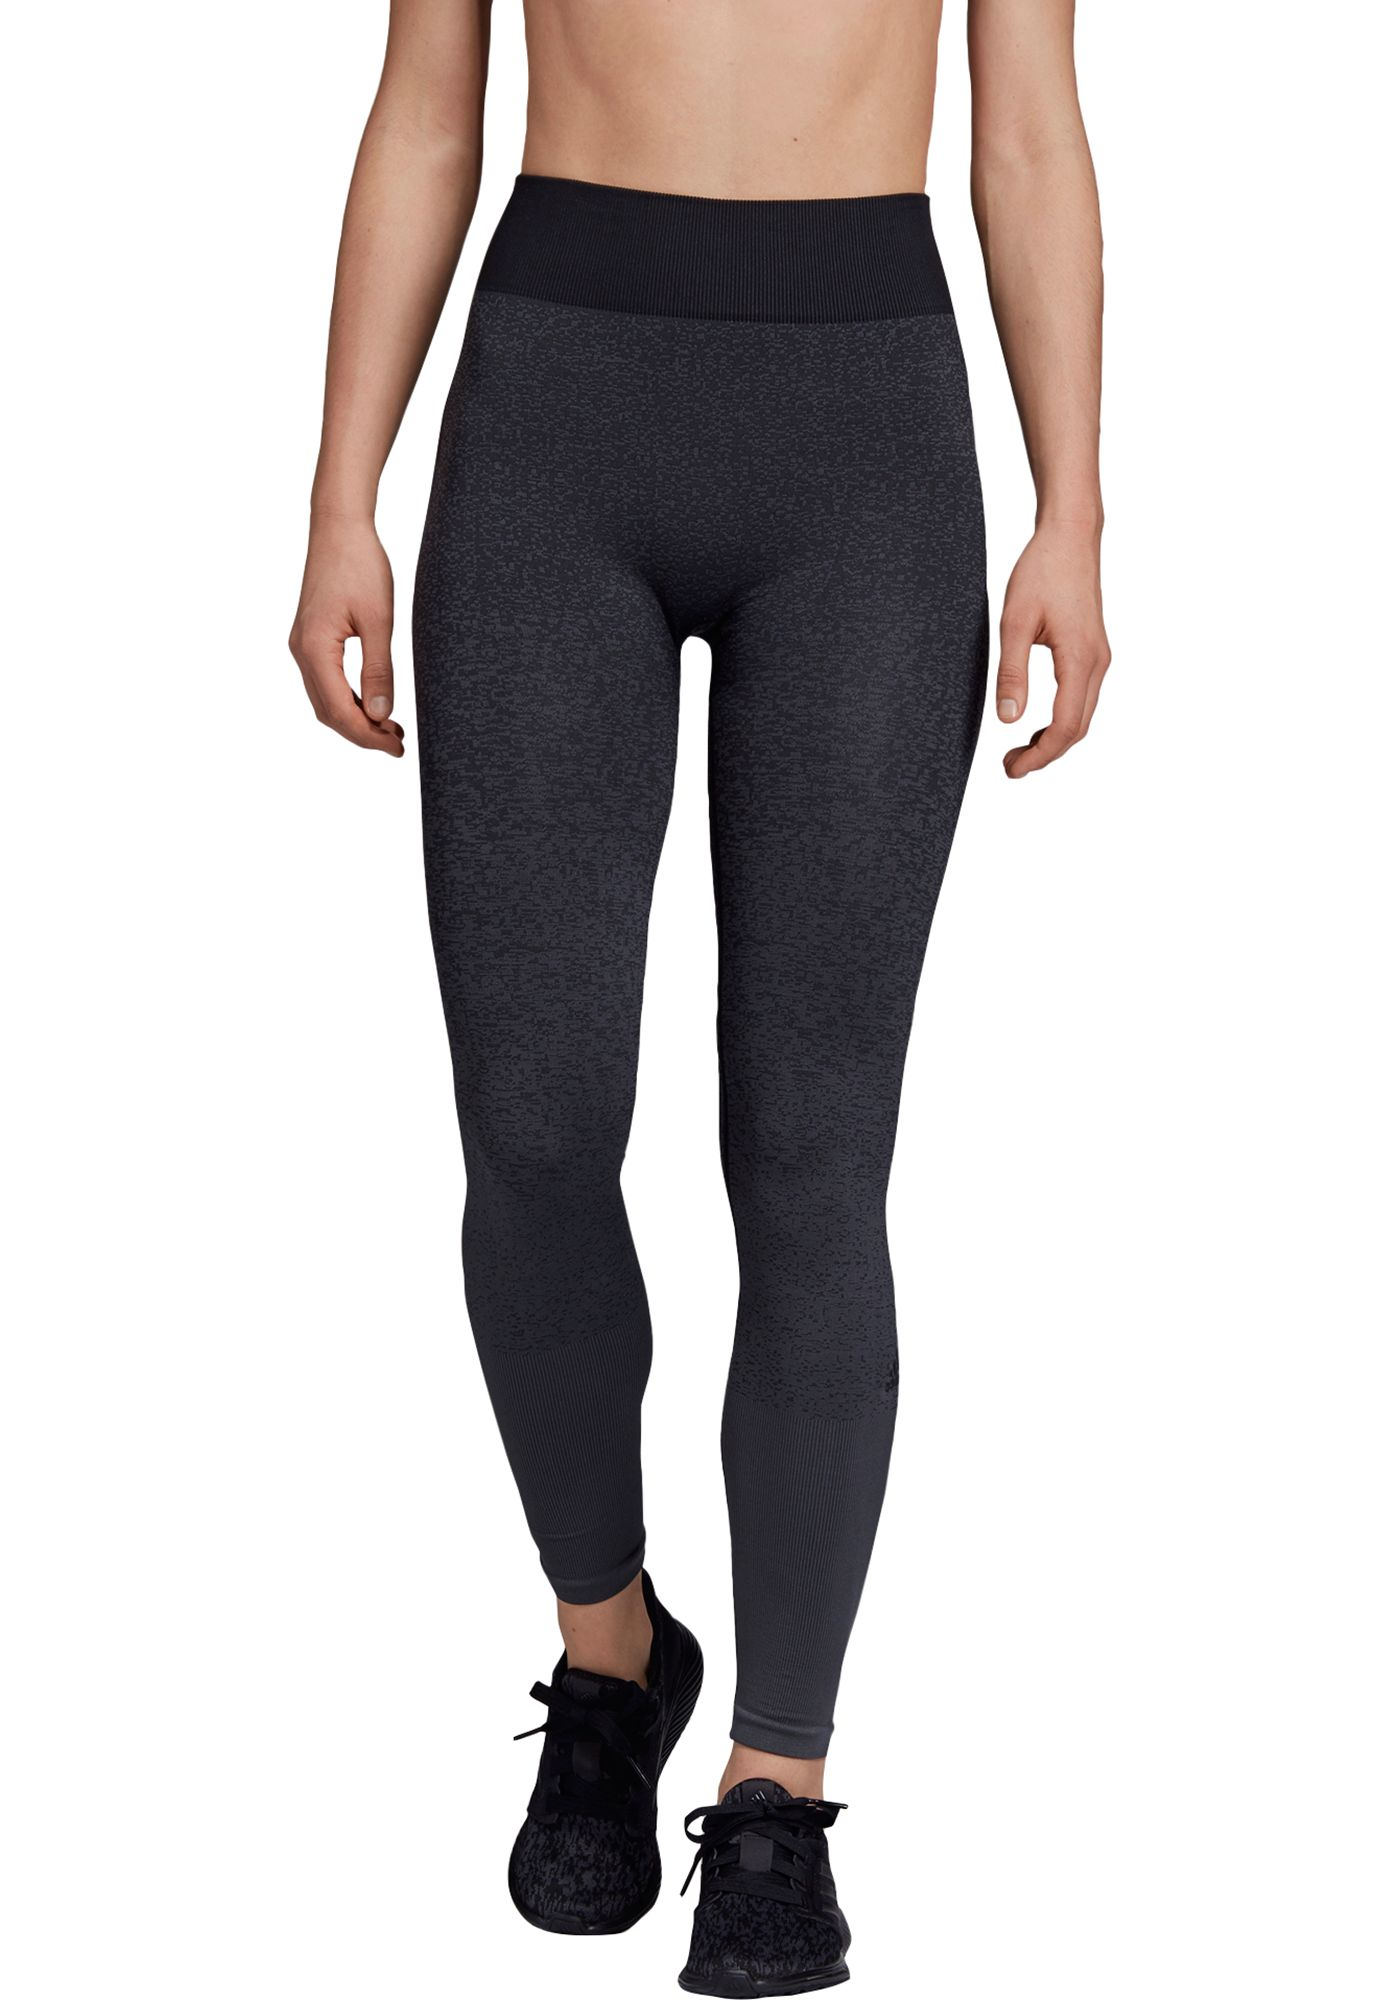 adidas Women's Believe This 7/8th Length Primeknit FLW Tights